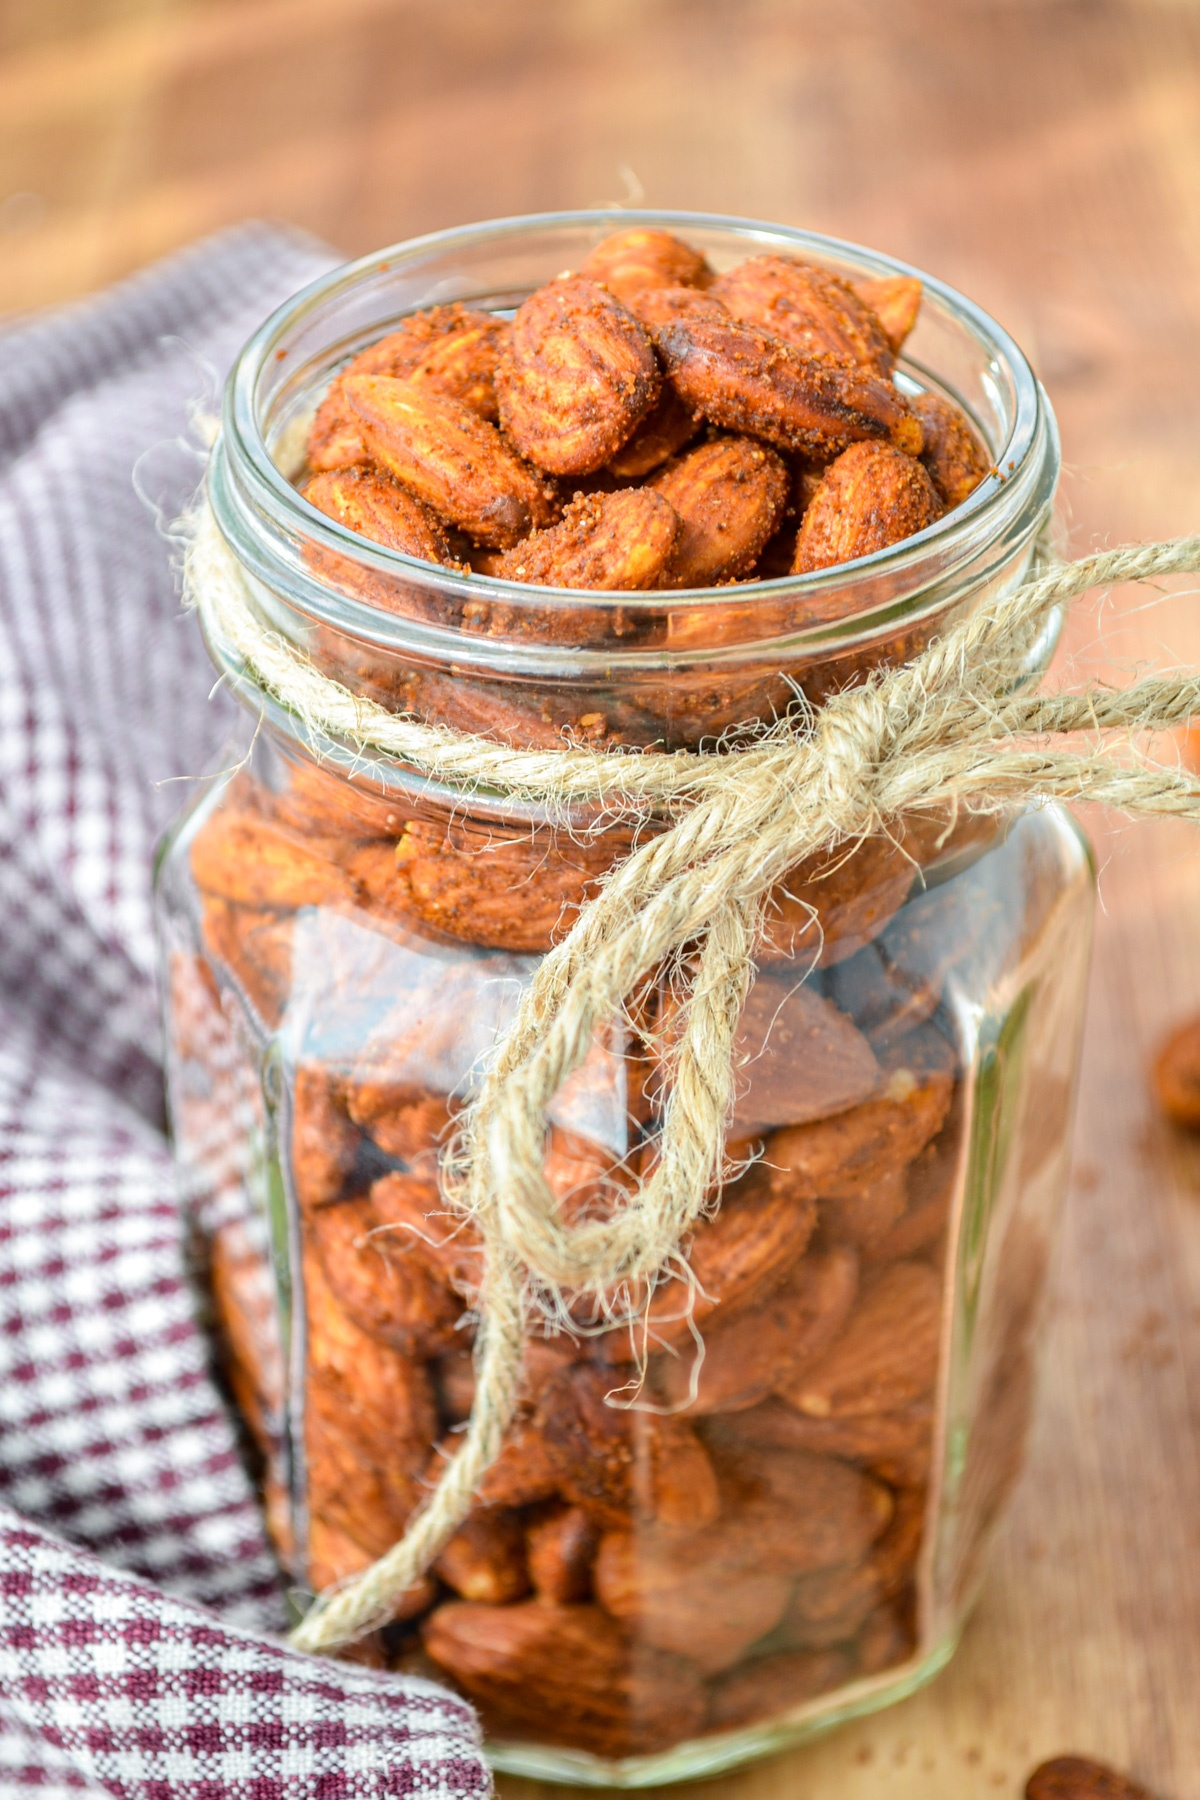 A fancy glass jar of roasted almonds, with a piece of twine tied around it.